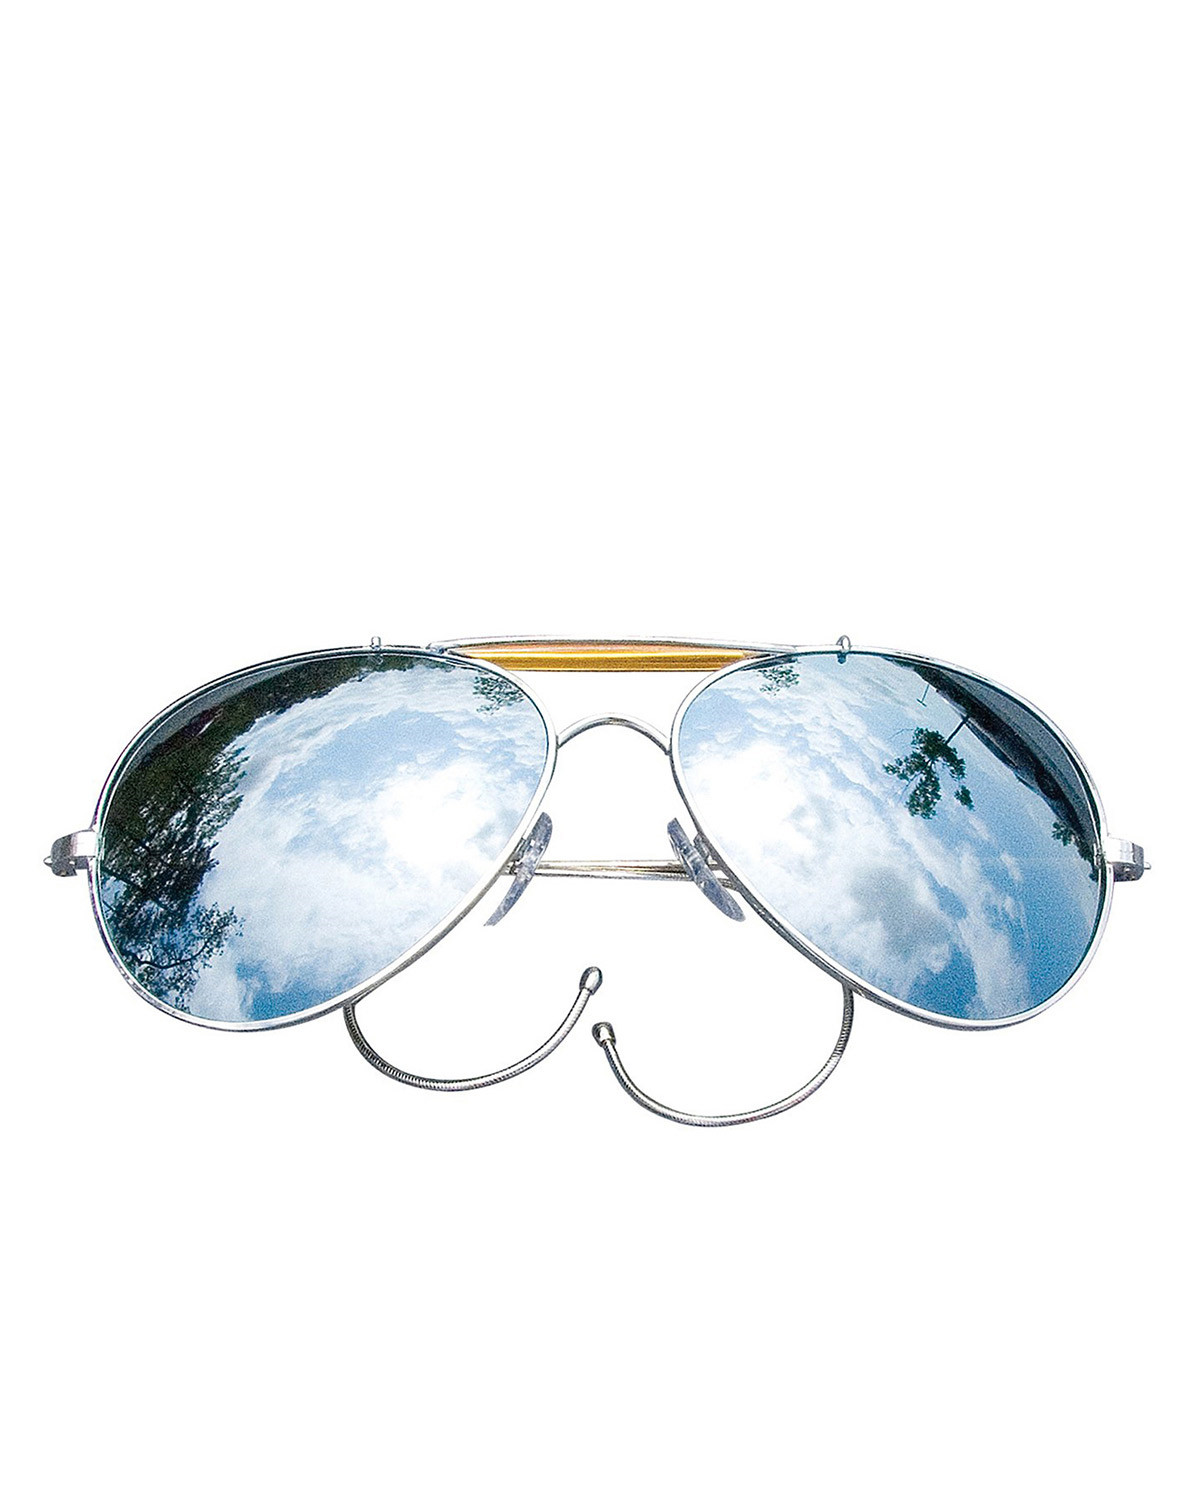 Image of   Rothco Aviator Solbriller - Air Force Style (Spejl, One Size)